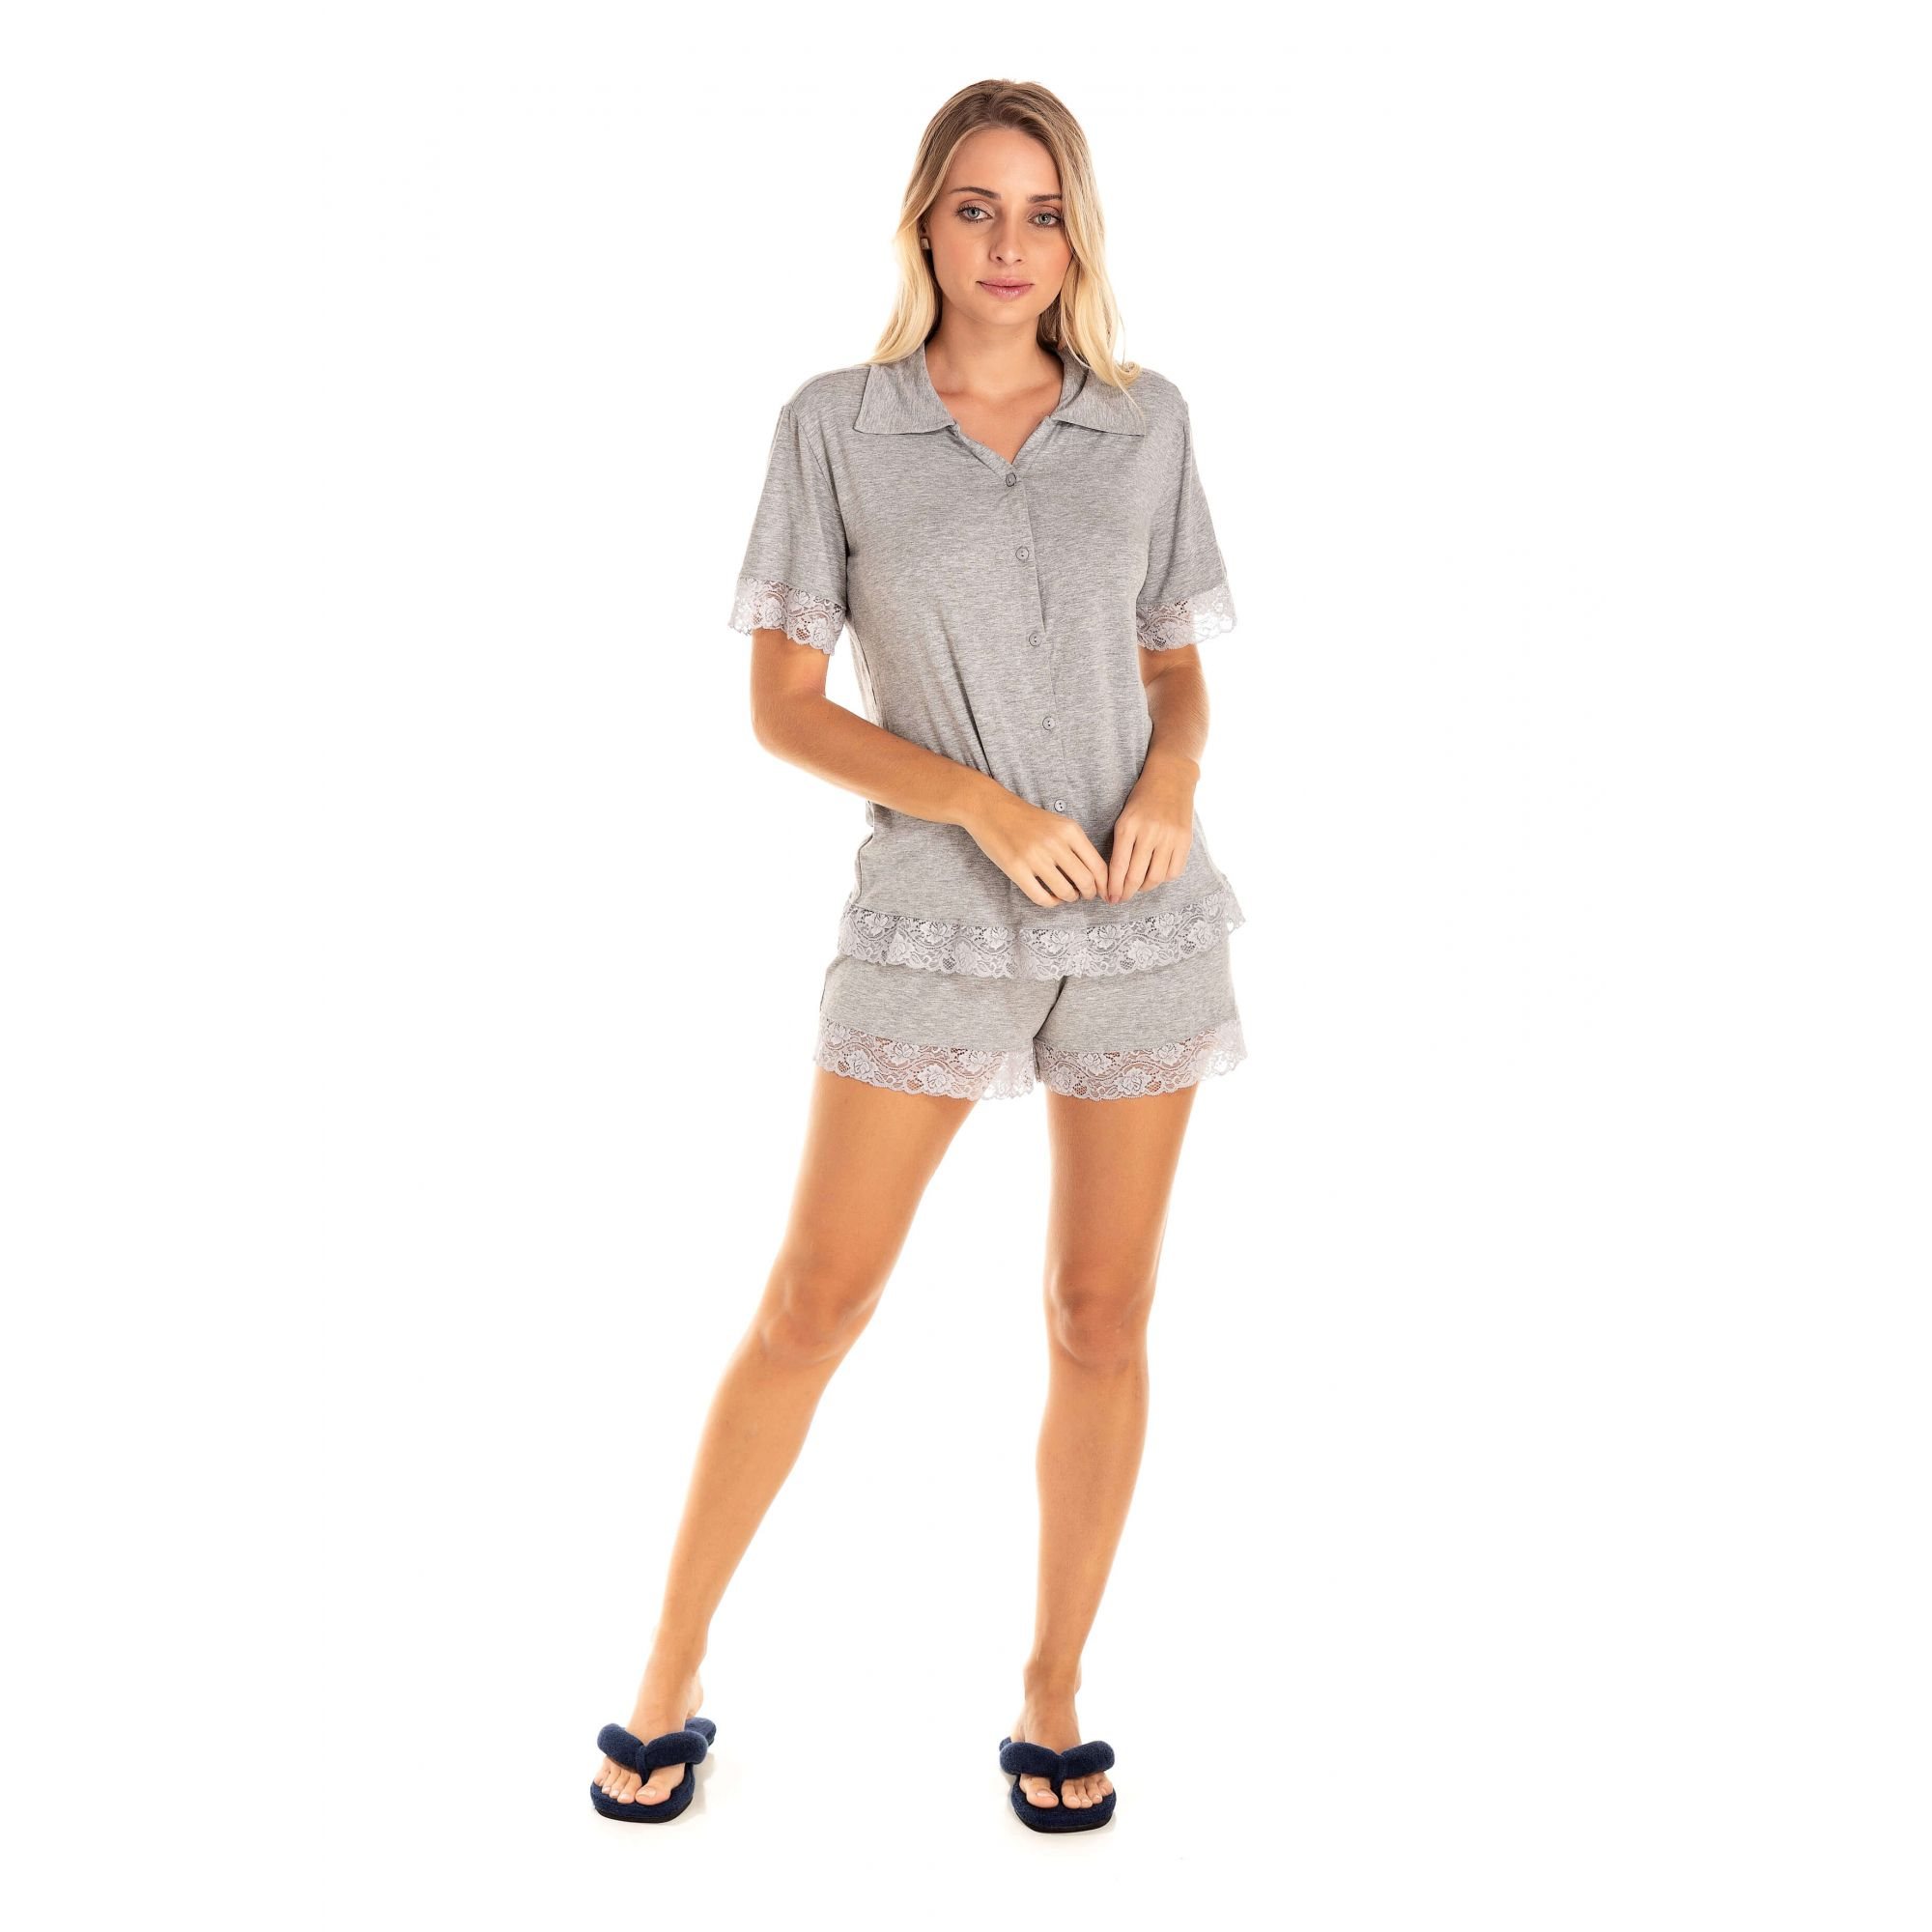 111/G - Short Doll Adulto Feminino Renda - Mescla